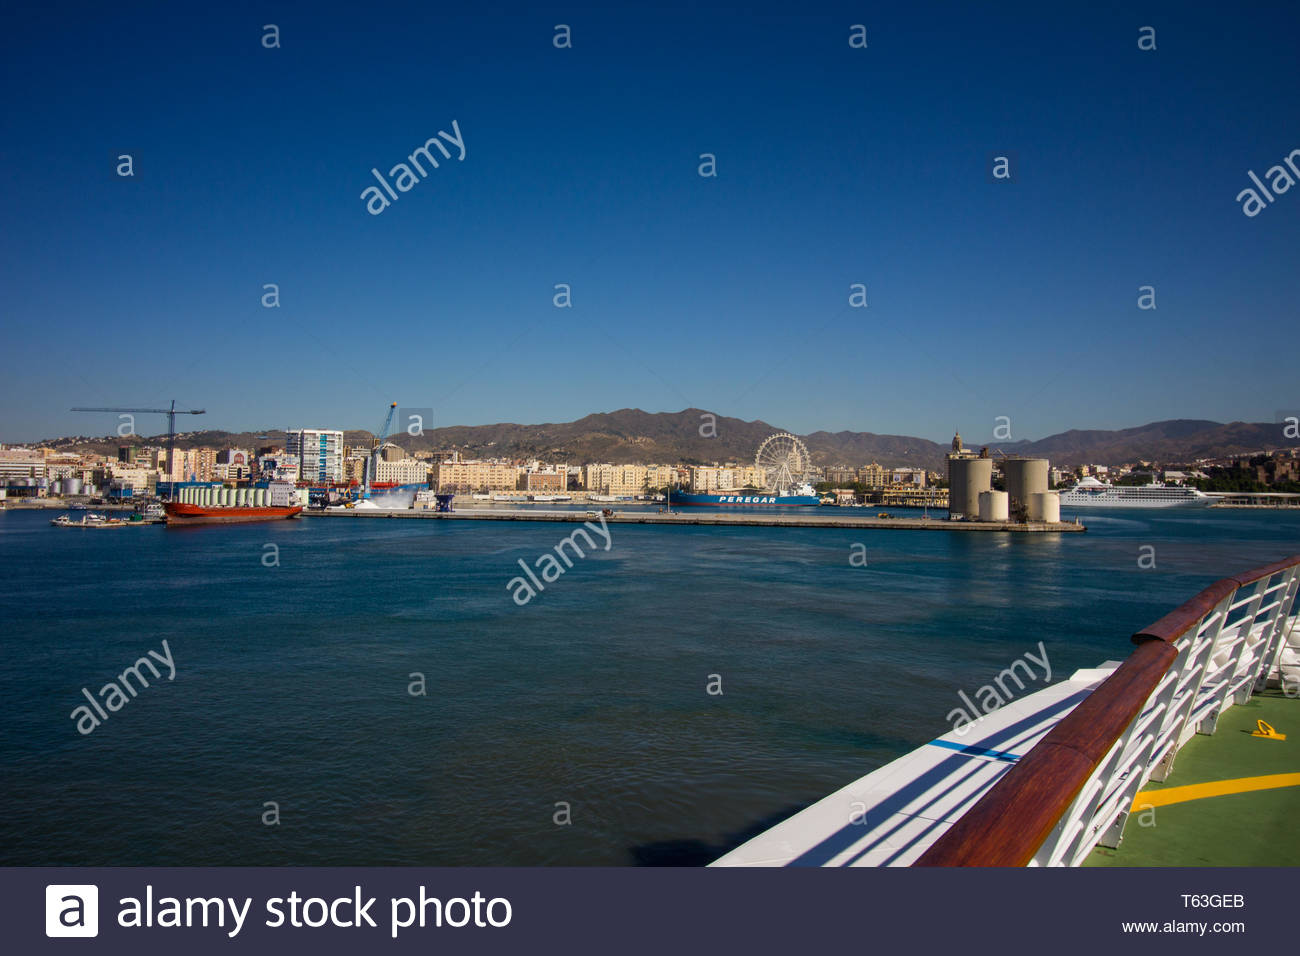 Malaga, Spain - May, 22, 2017: Royal Caribbean cruise ship navigator of the seas making its way to Malaga dock. - Stock Image